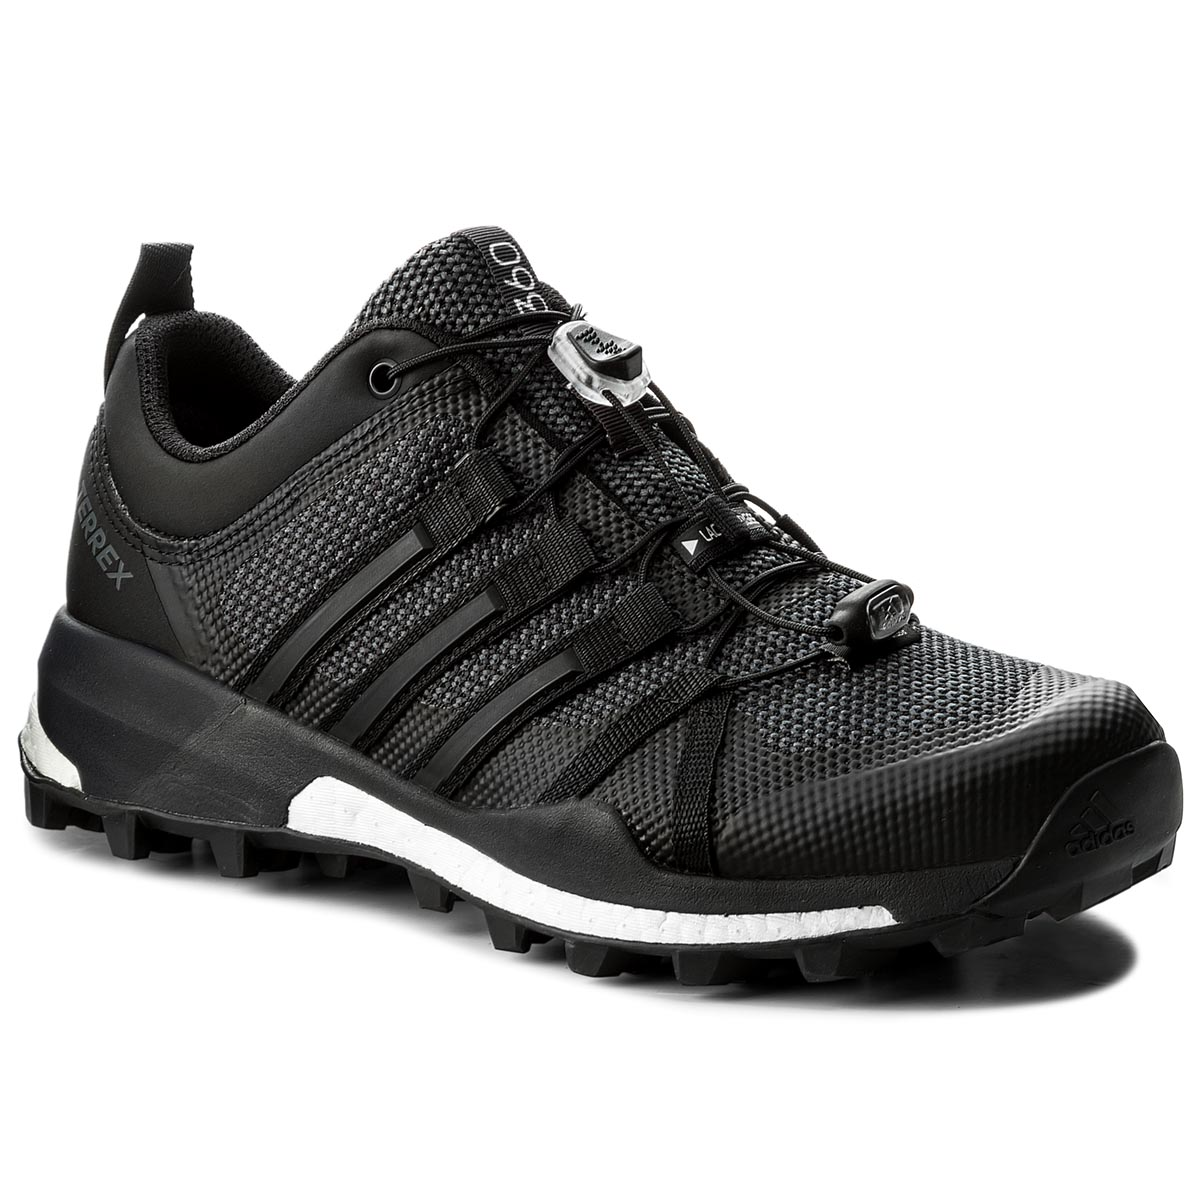 best sneakers f2a52 75051 Buty adidas Terrex Skychaser CQ1739 CarbonCblackFtwwht